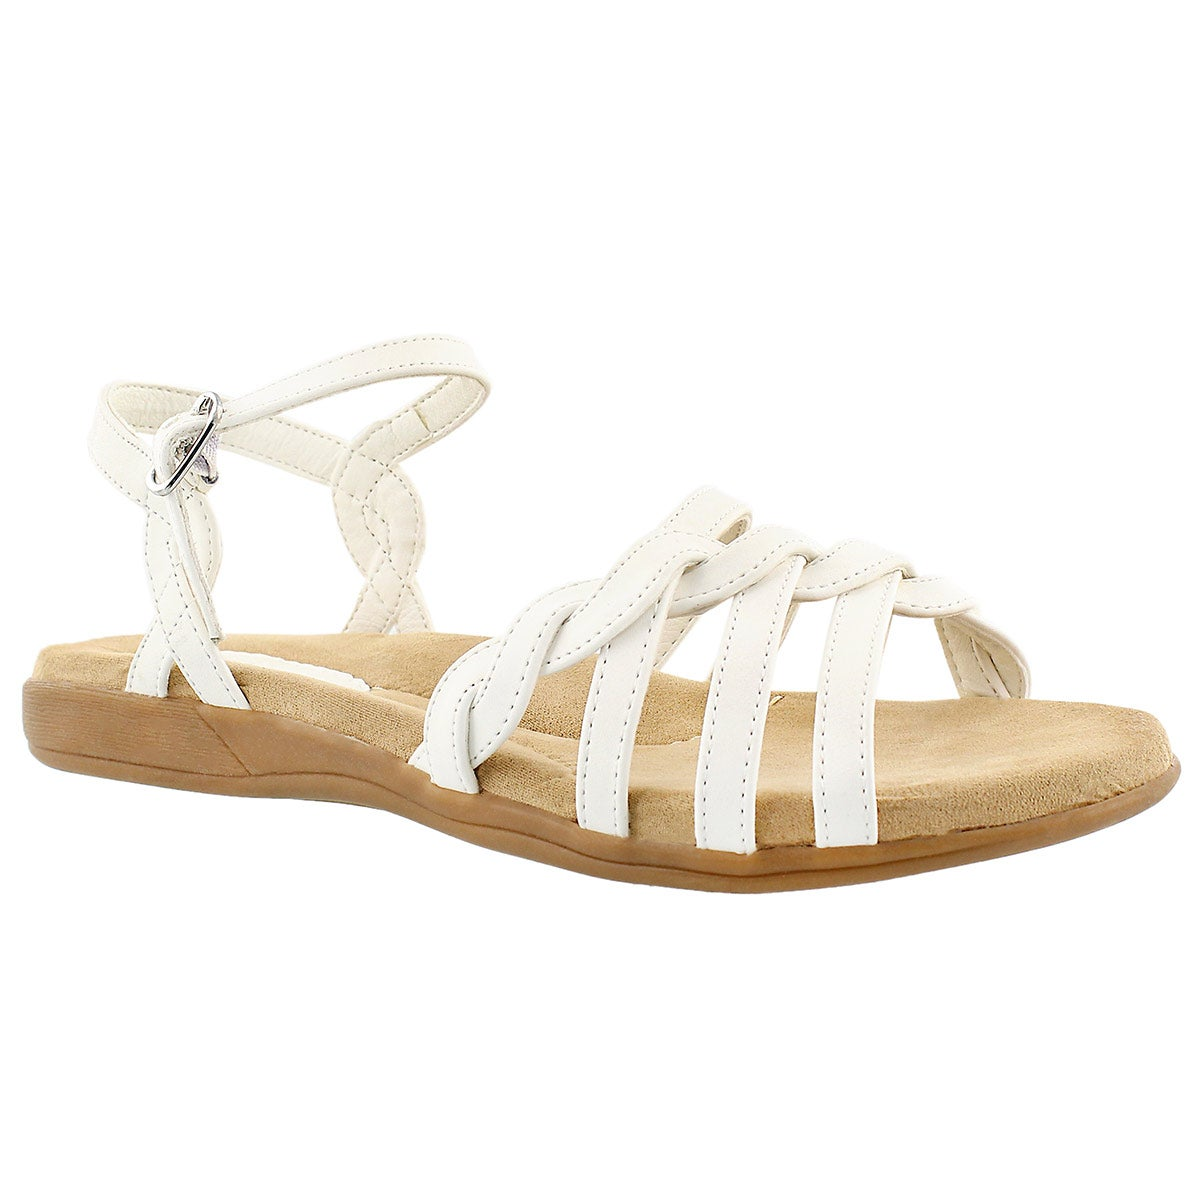 Lds Grace white memory foam sandal